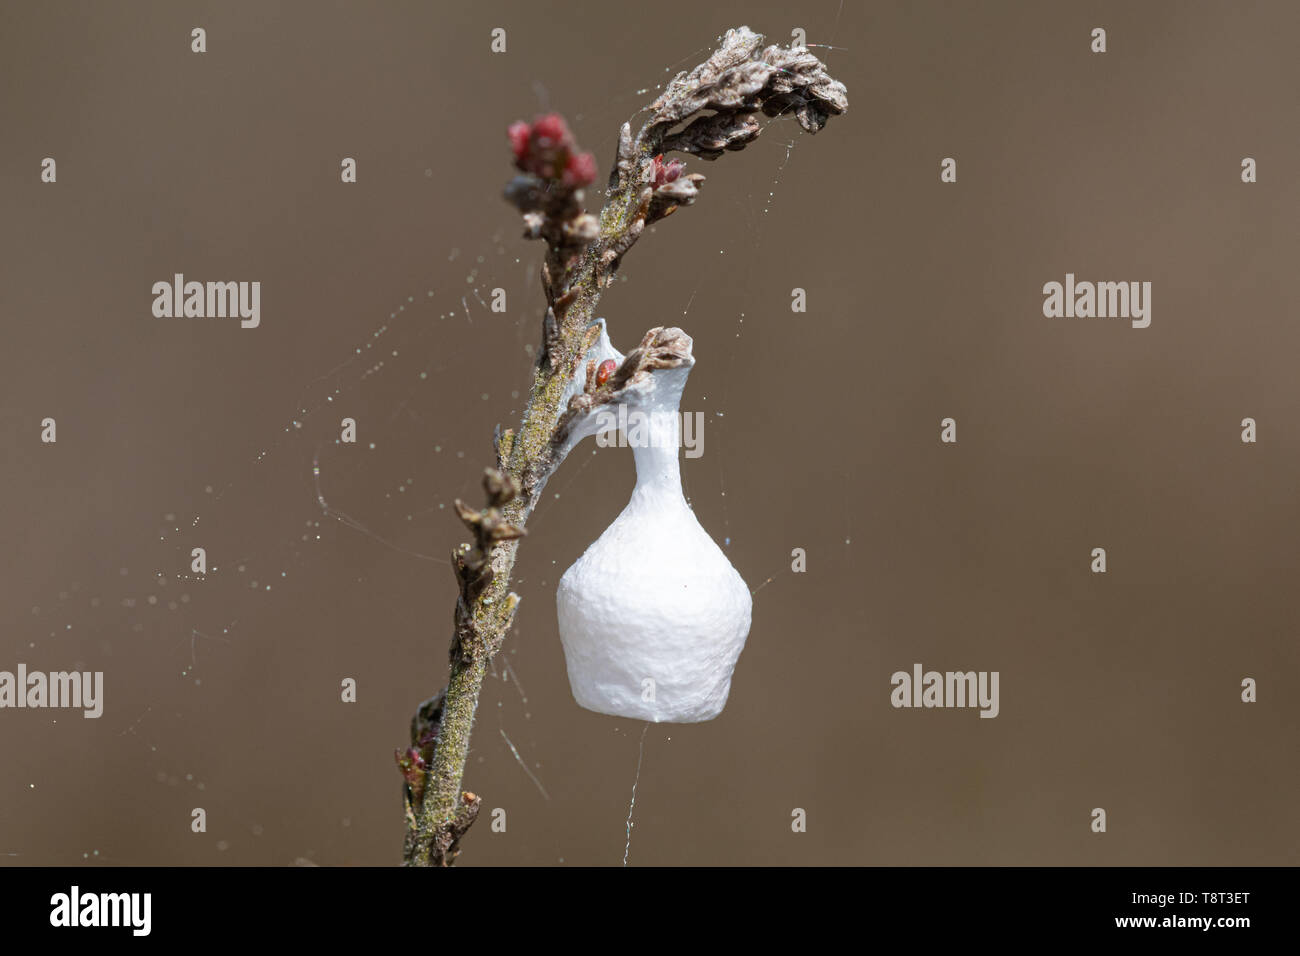 Egg case of a fairy-lamp spider (fairy lamp spider, Agroeca brunnea) on heather, UK Stock Photo